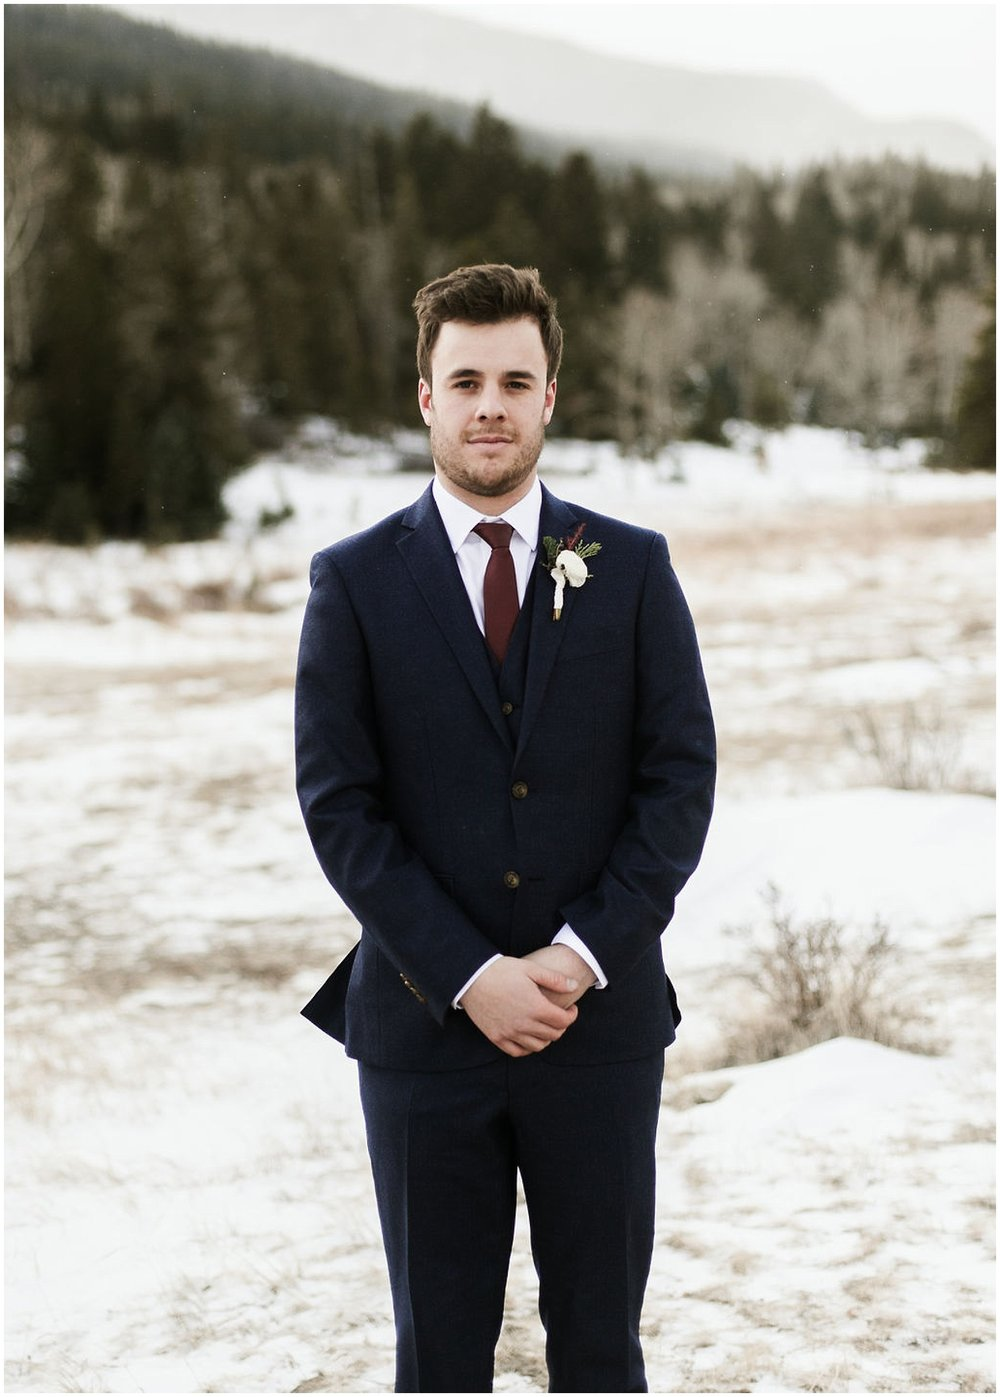 Katesalleyphotography-233_Haley and Dan get married in Estes Park.jpg